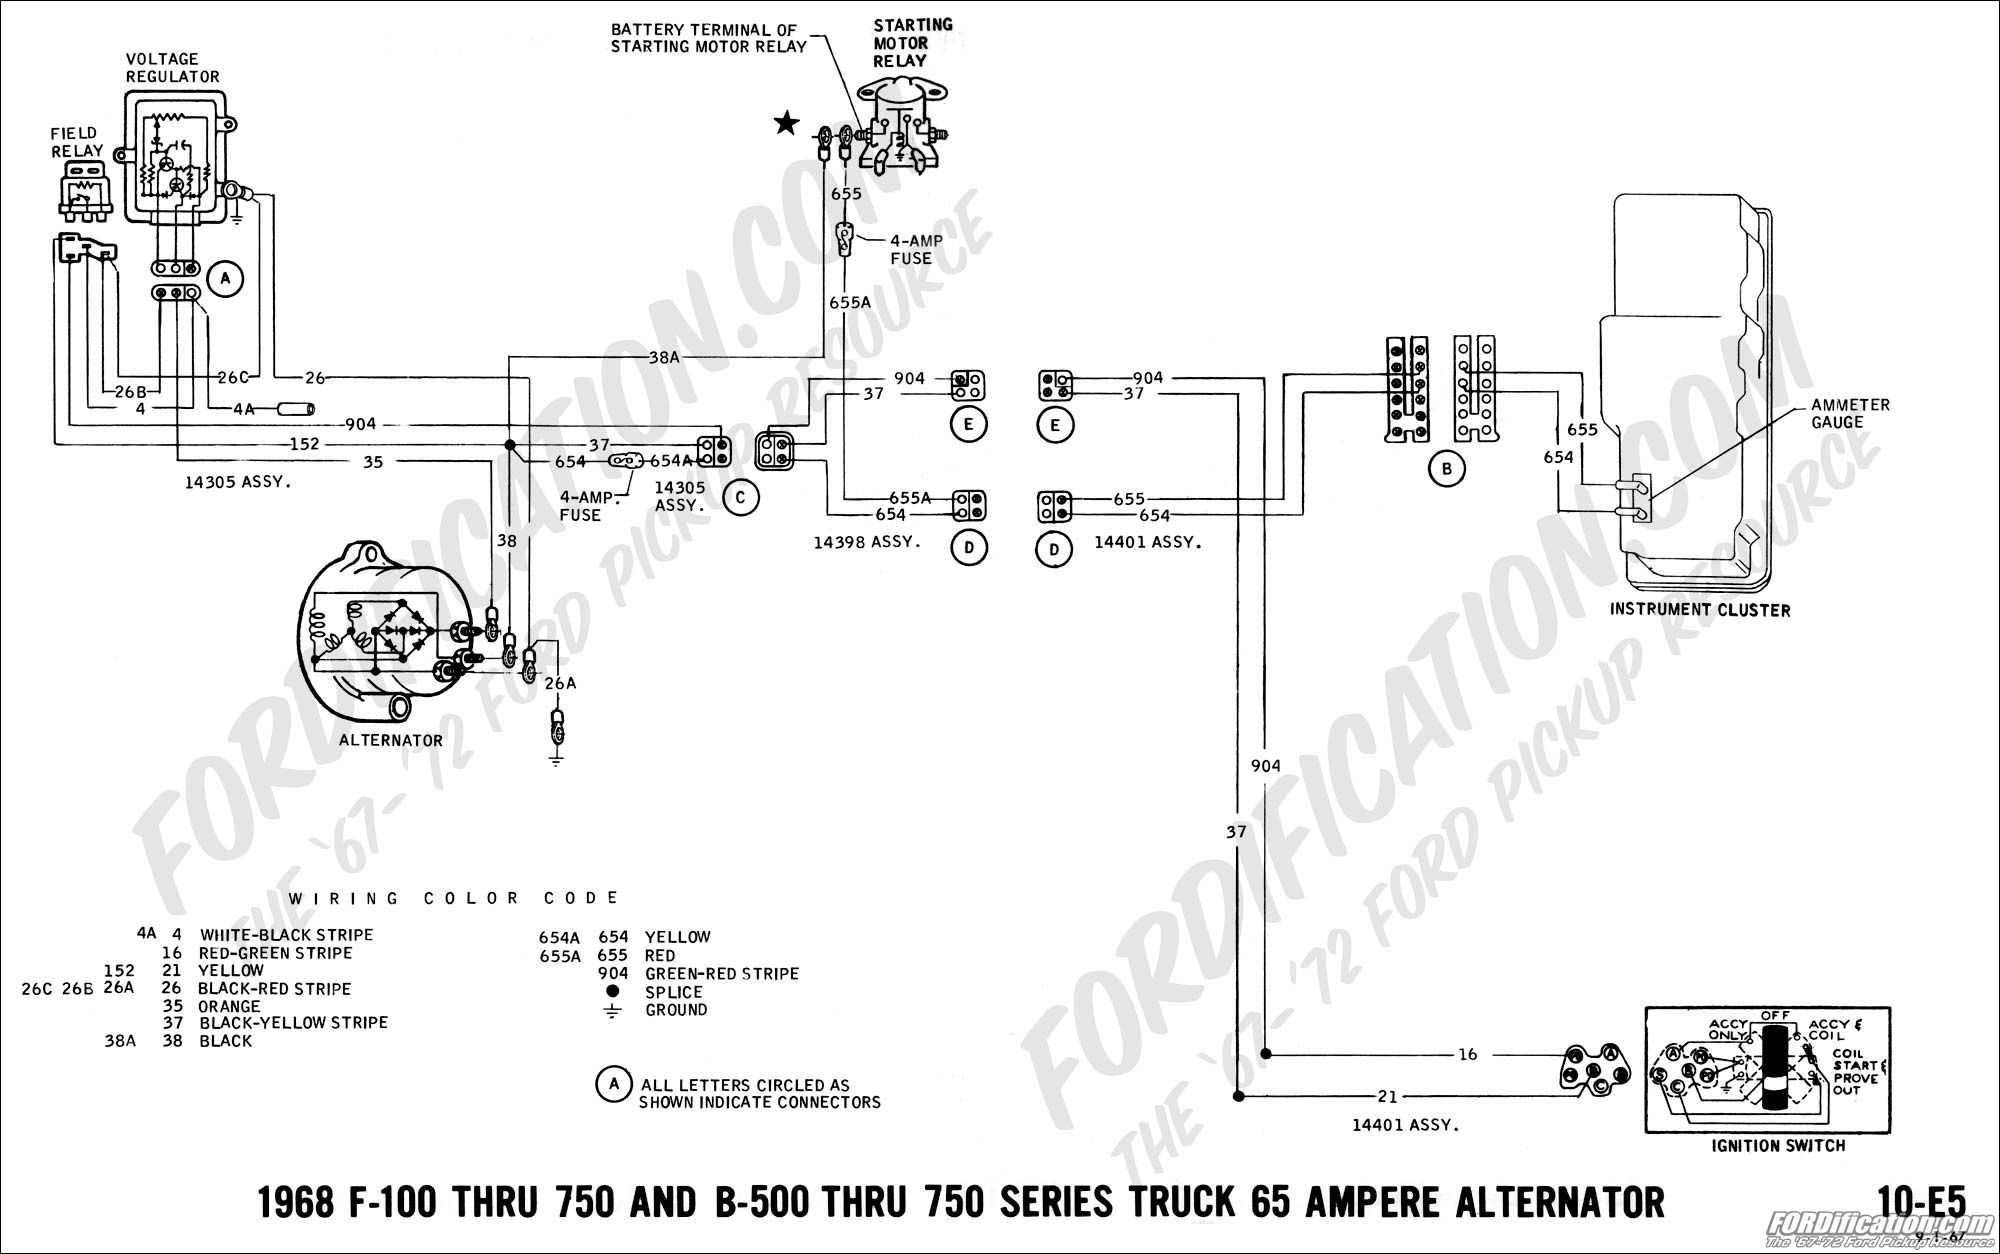 1982 chevy c10 wiring diagram air conditioning 68 ford alternator wiring diagram  with images  alternator  68 ford alternator wiring diagram  with